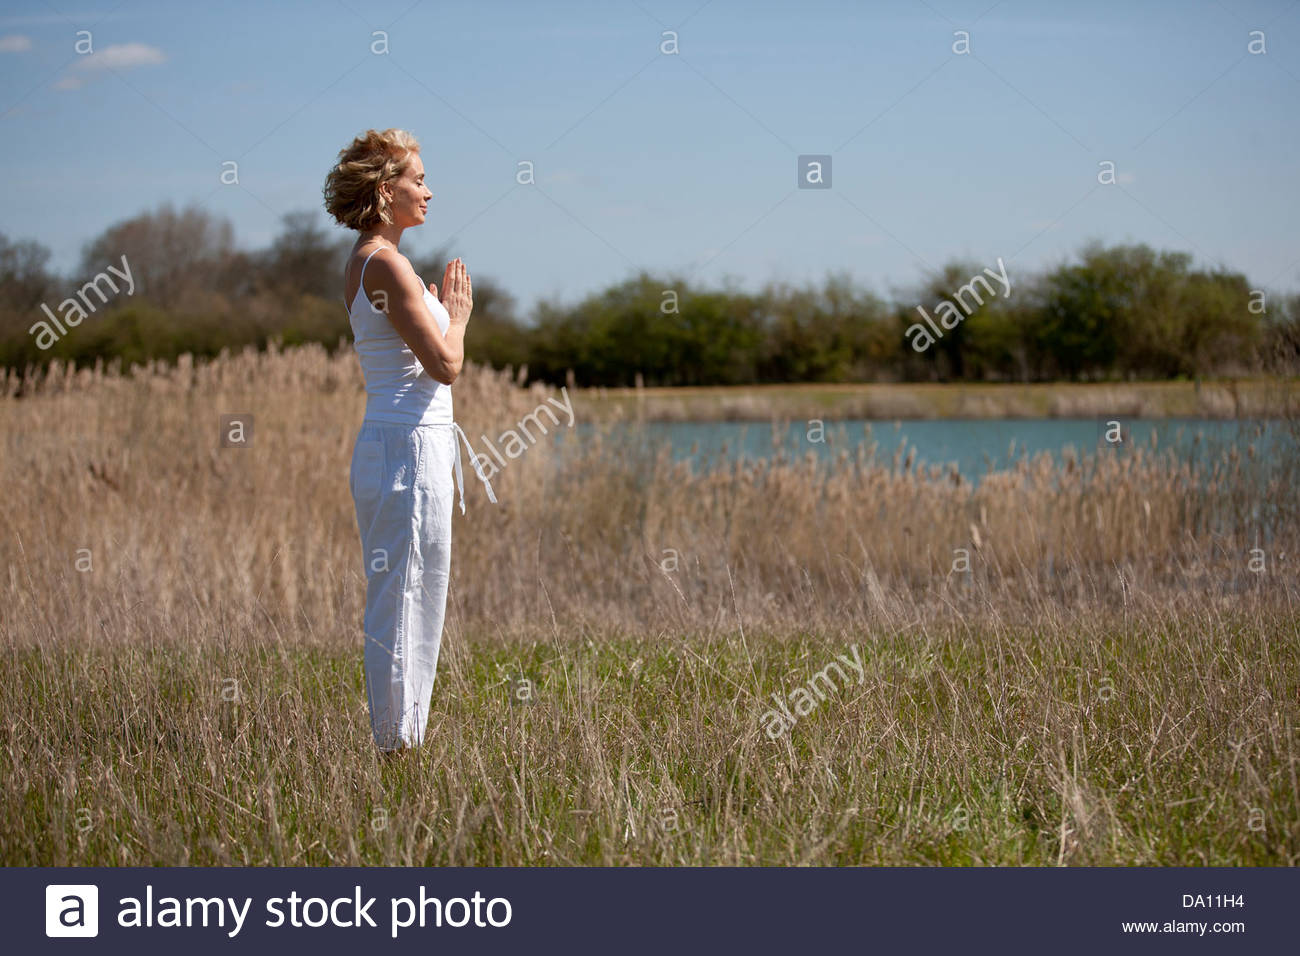 A mid adult woman practicing yoga in the countryside in summertime - Stock Image